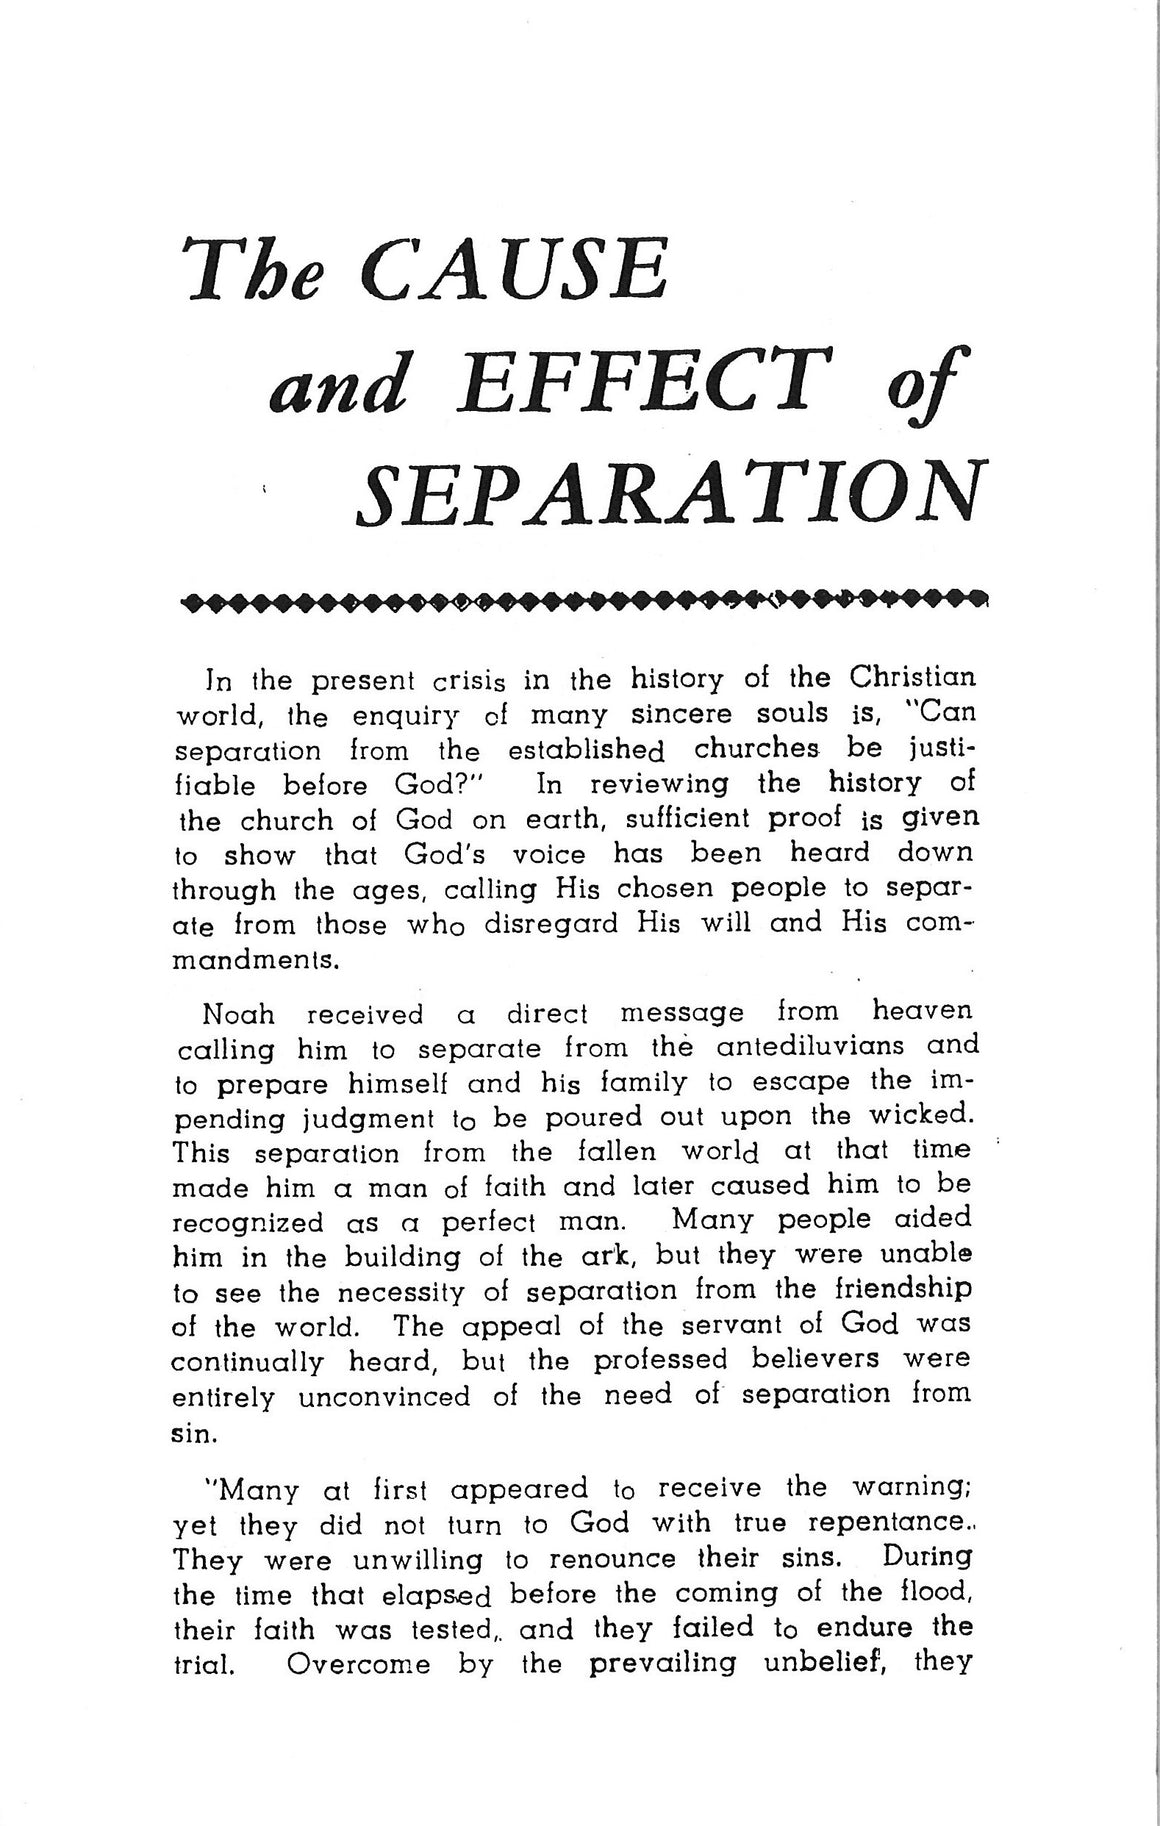 Cause and Effect of Separation, by D. Nicolici